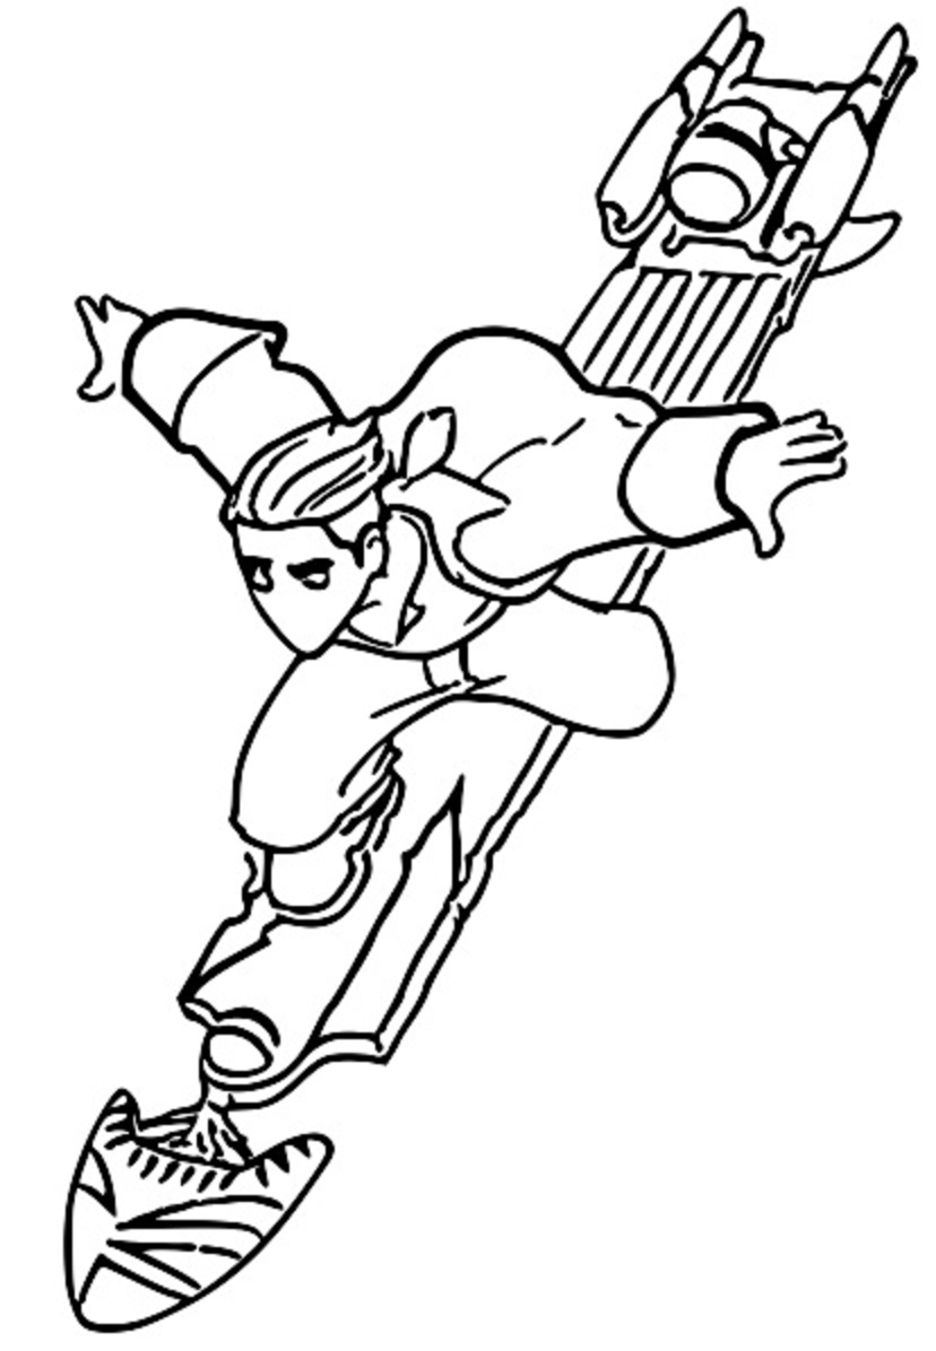 Treasure Planet tr 21 Coloring Pages_Cartoonized